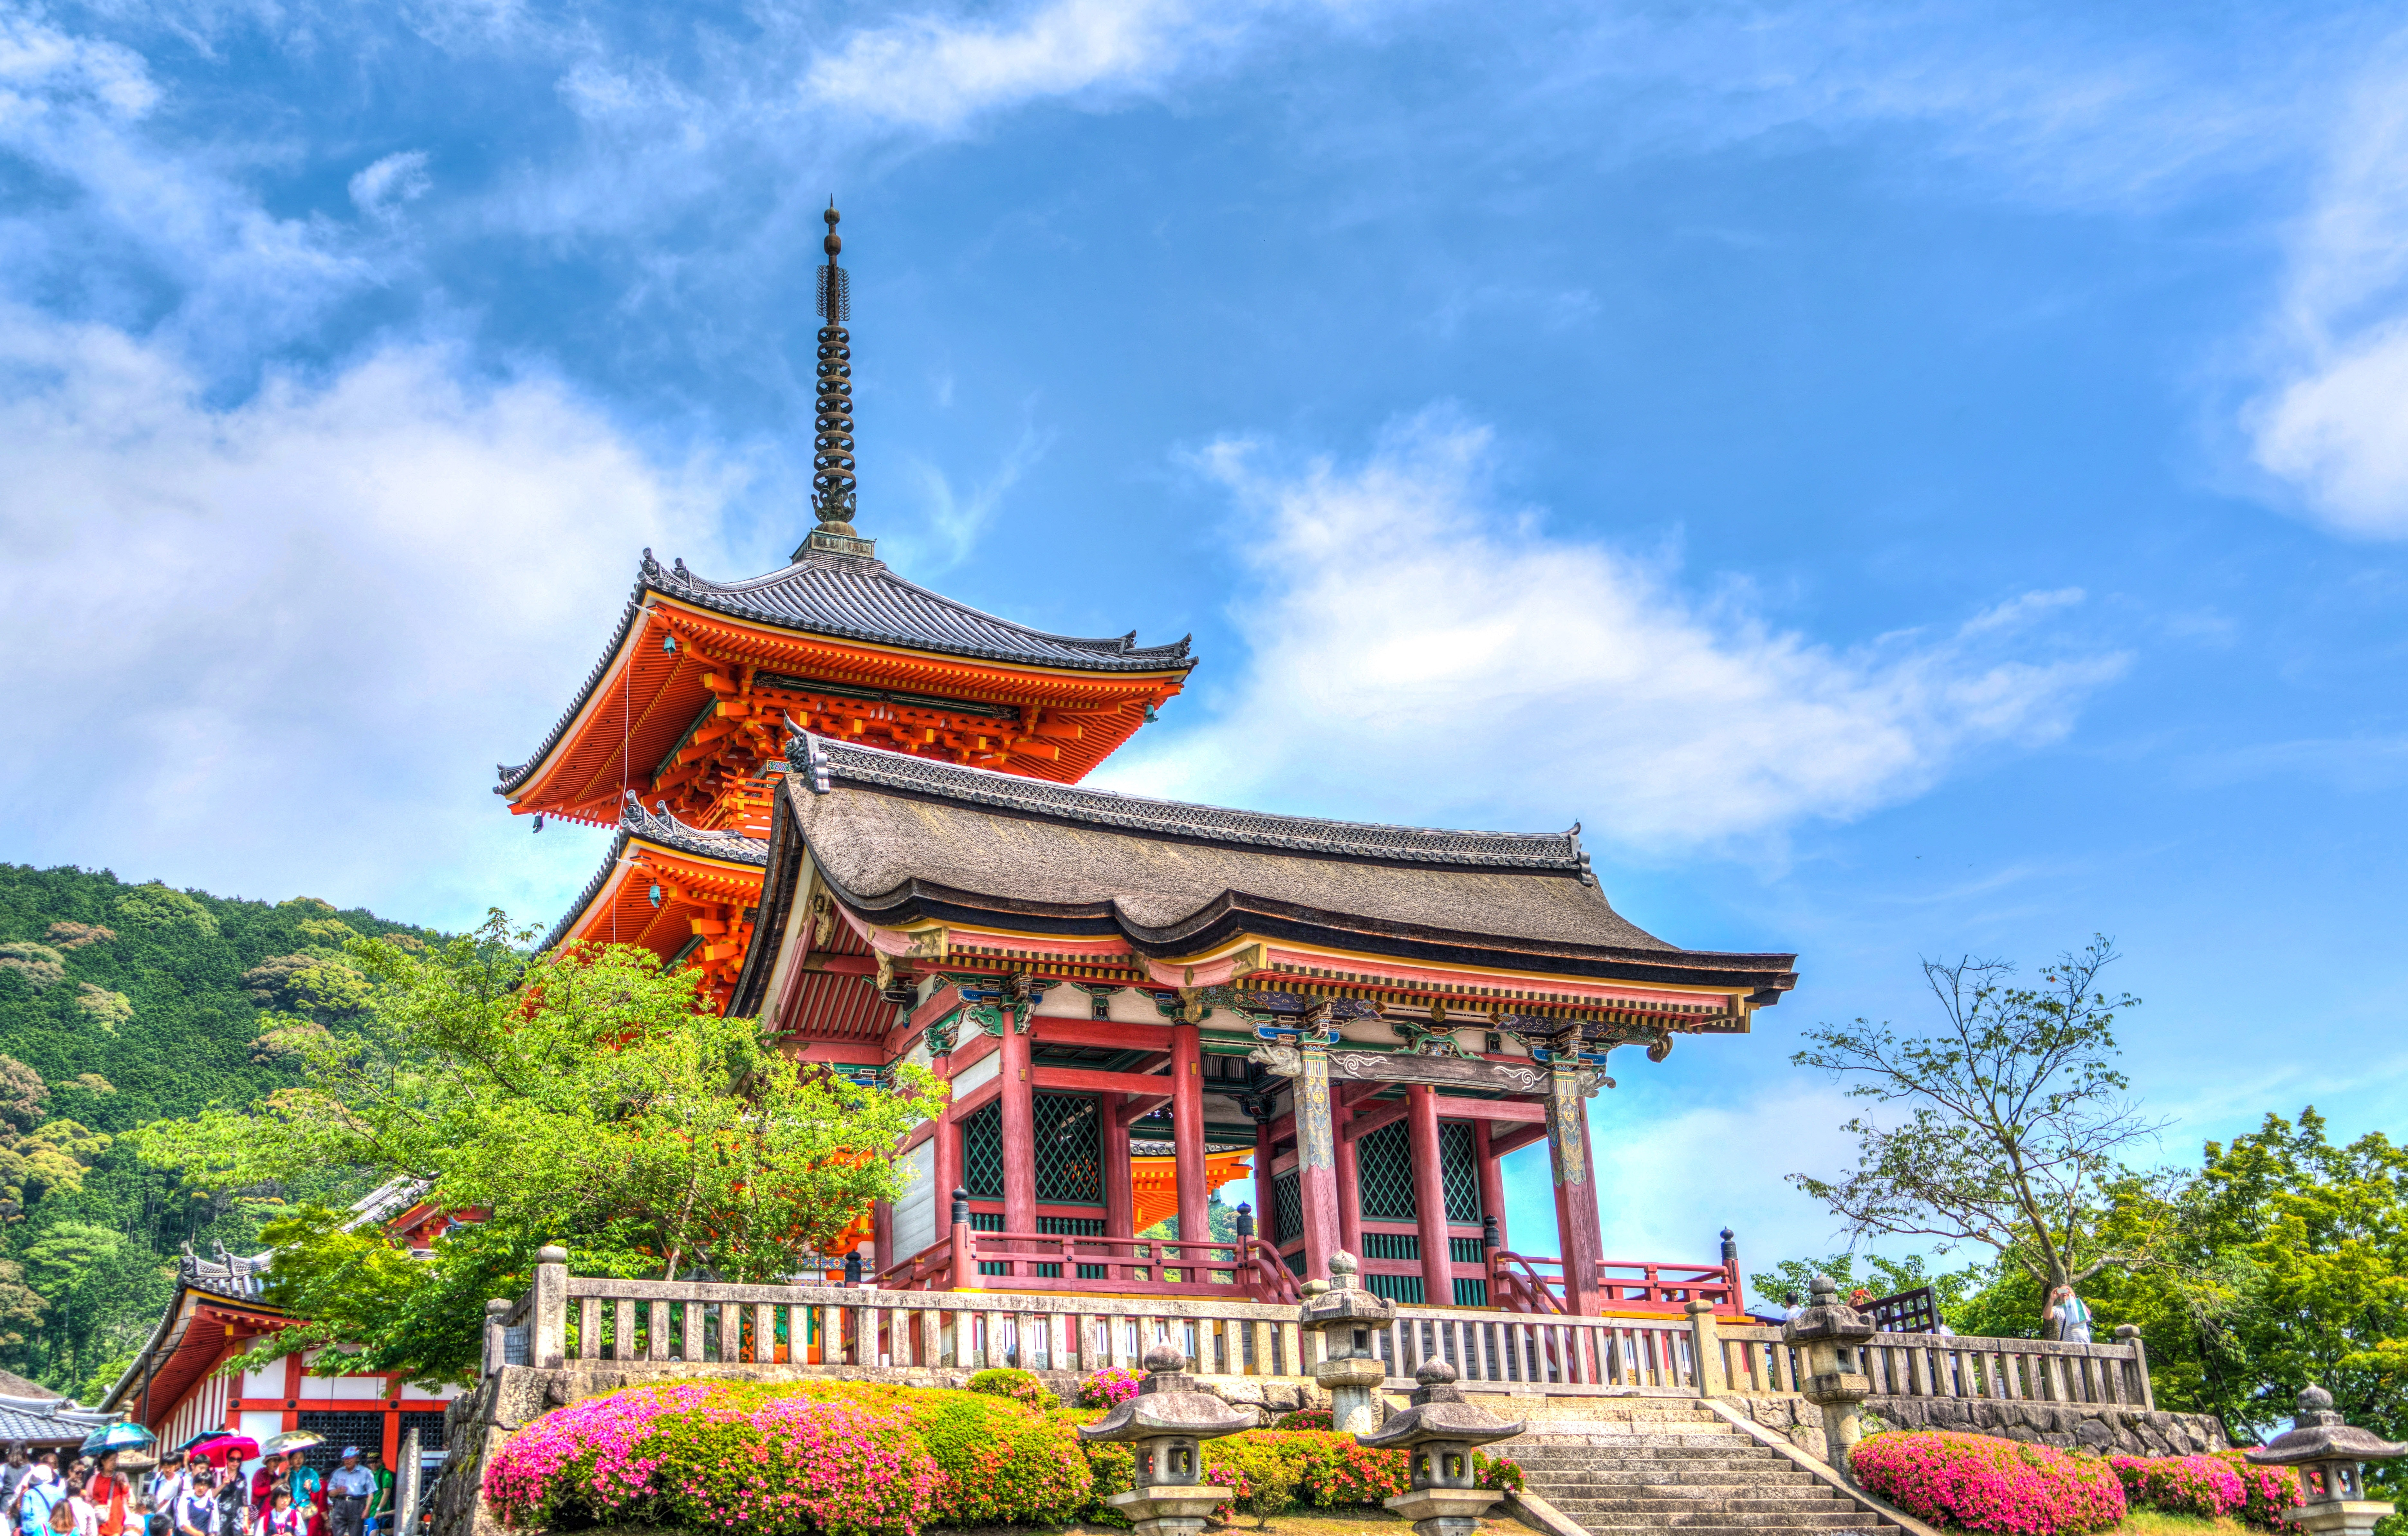 Temple on elevated area under blue sky and white clouds during daytime photo